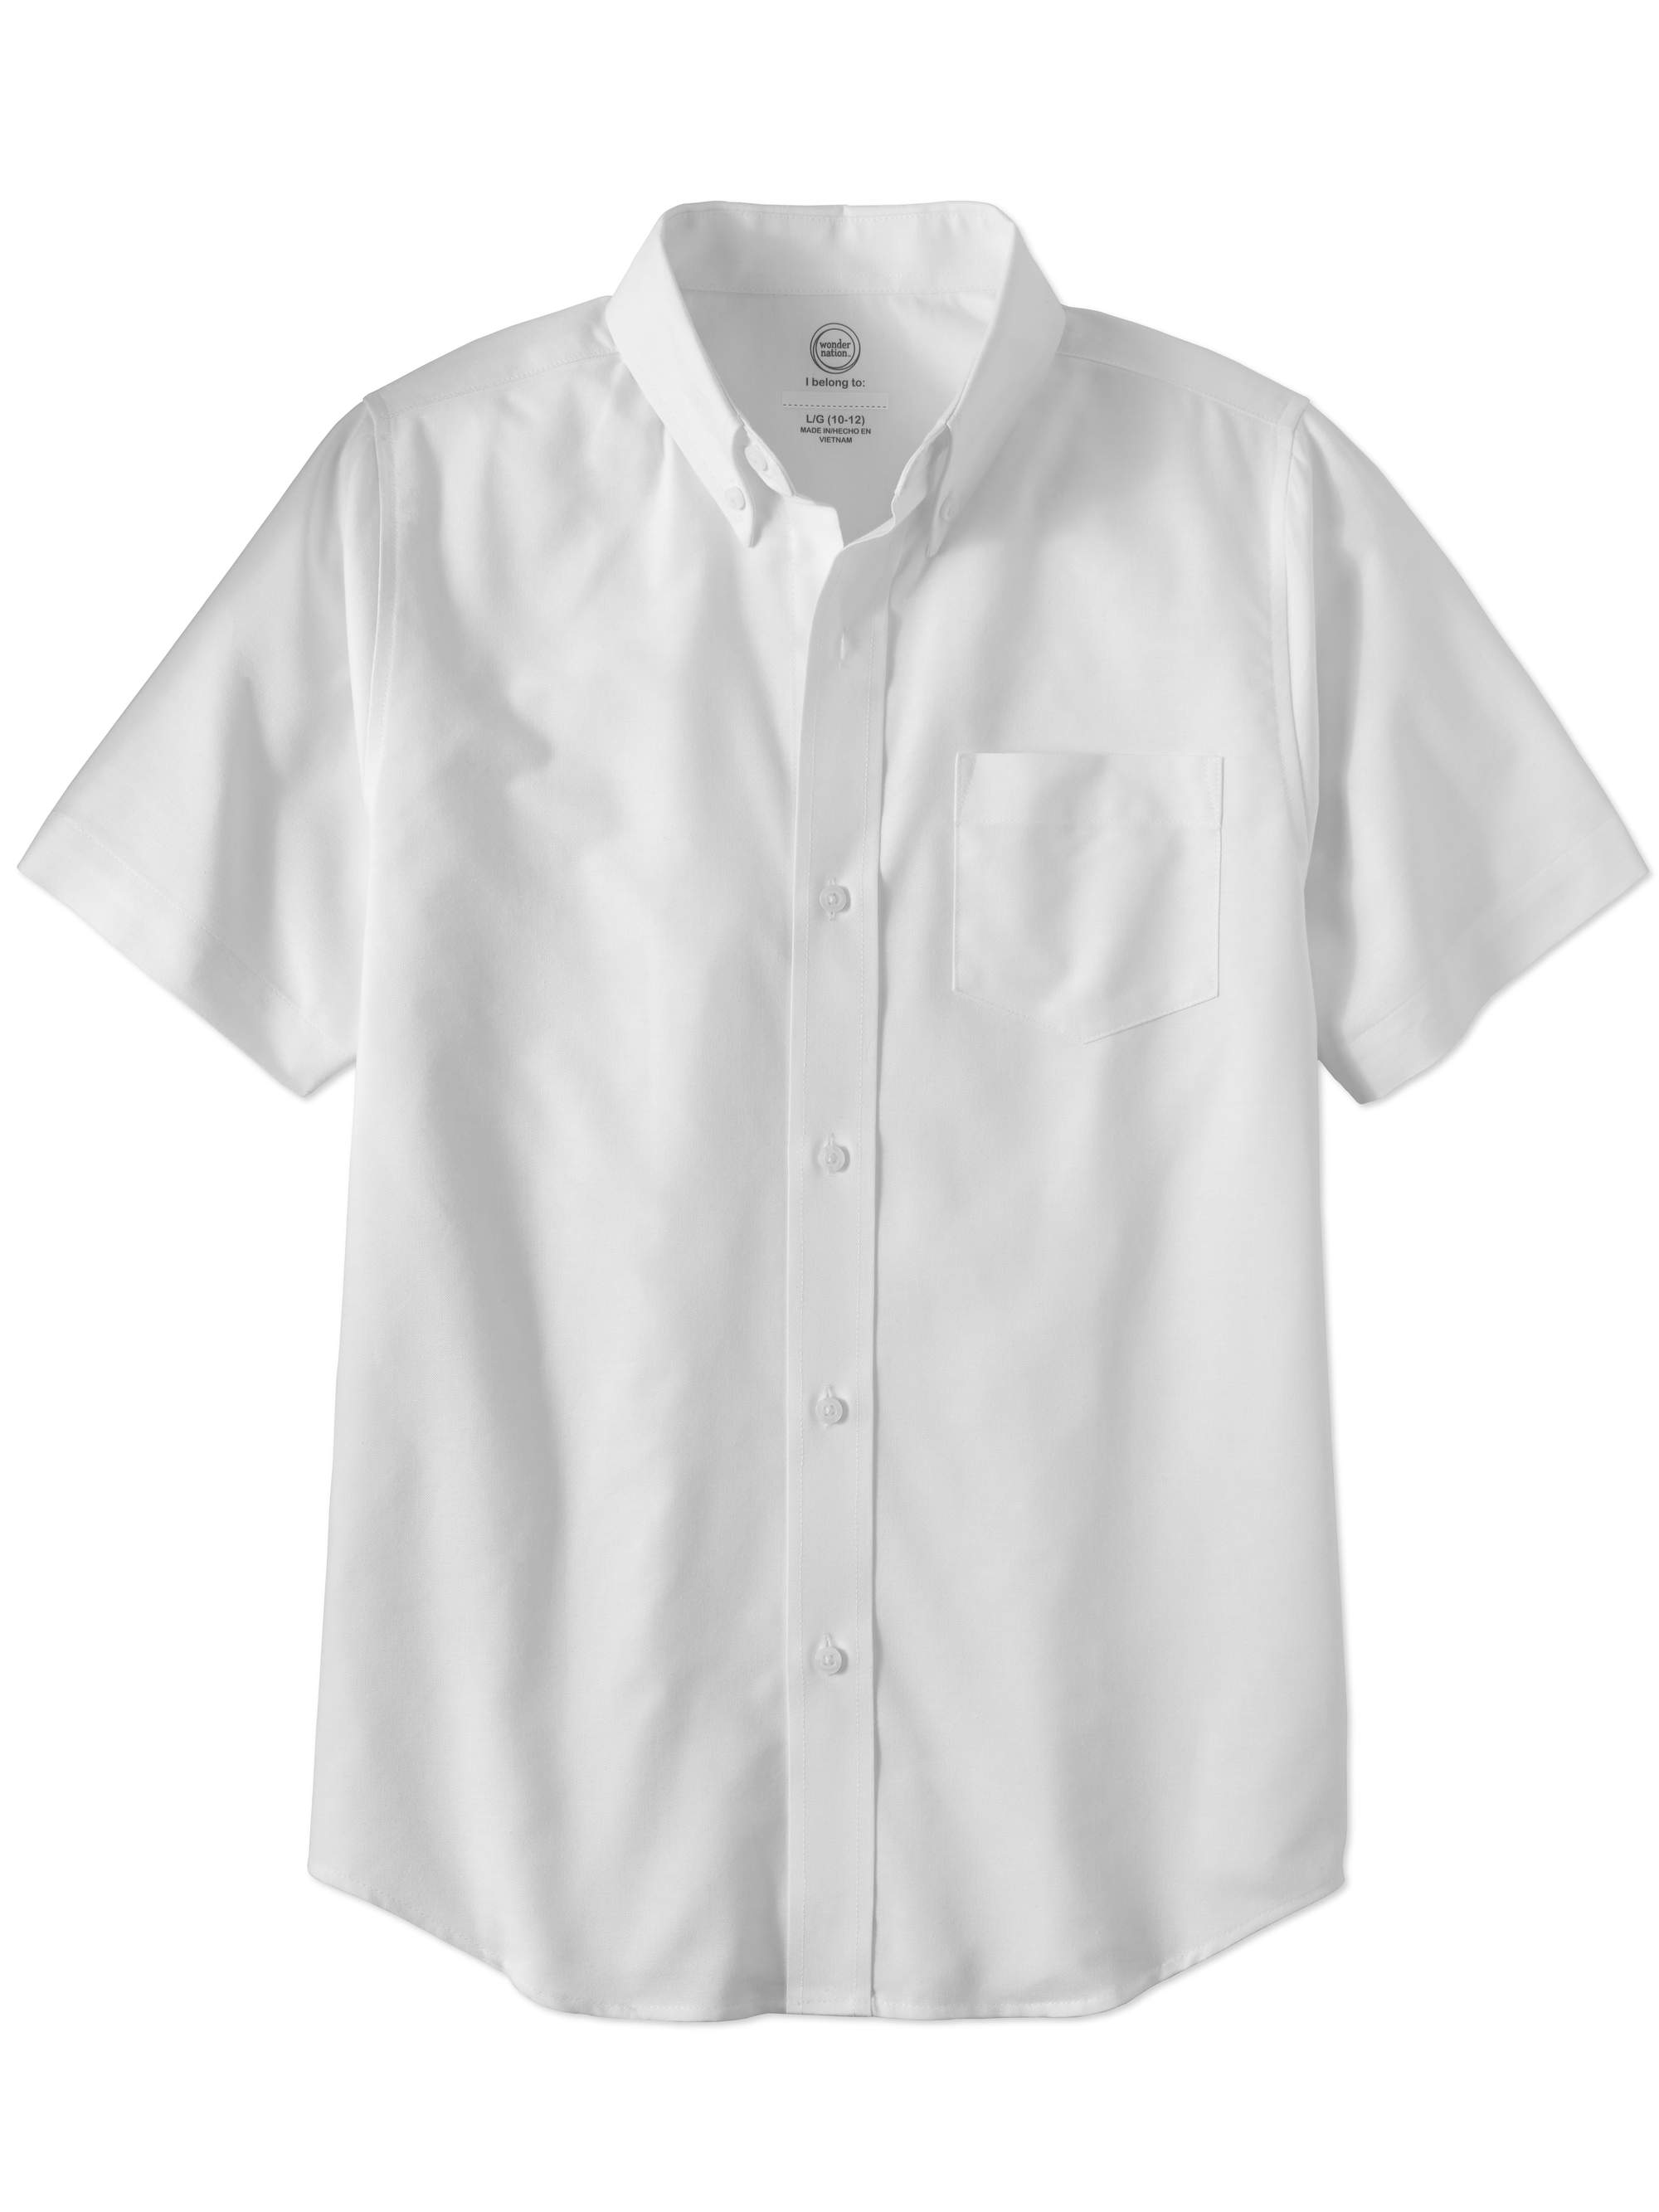 Boys School Uniform Short Sleeve Oxford Shirt